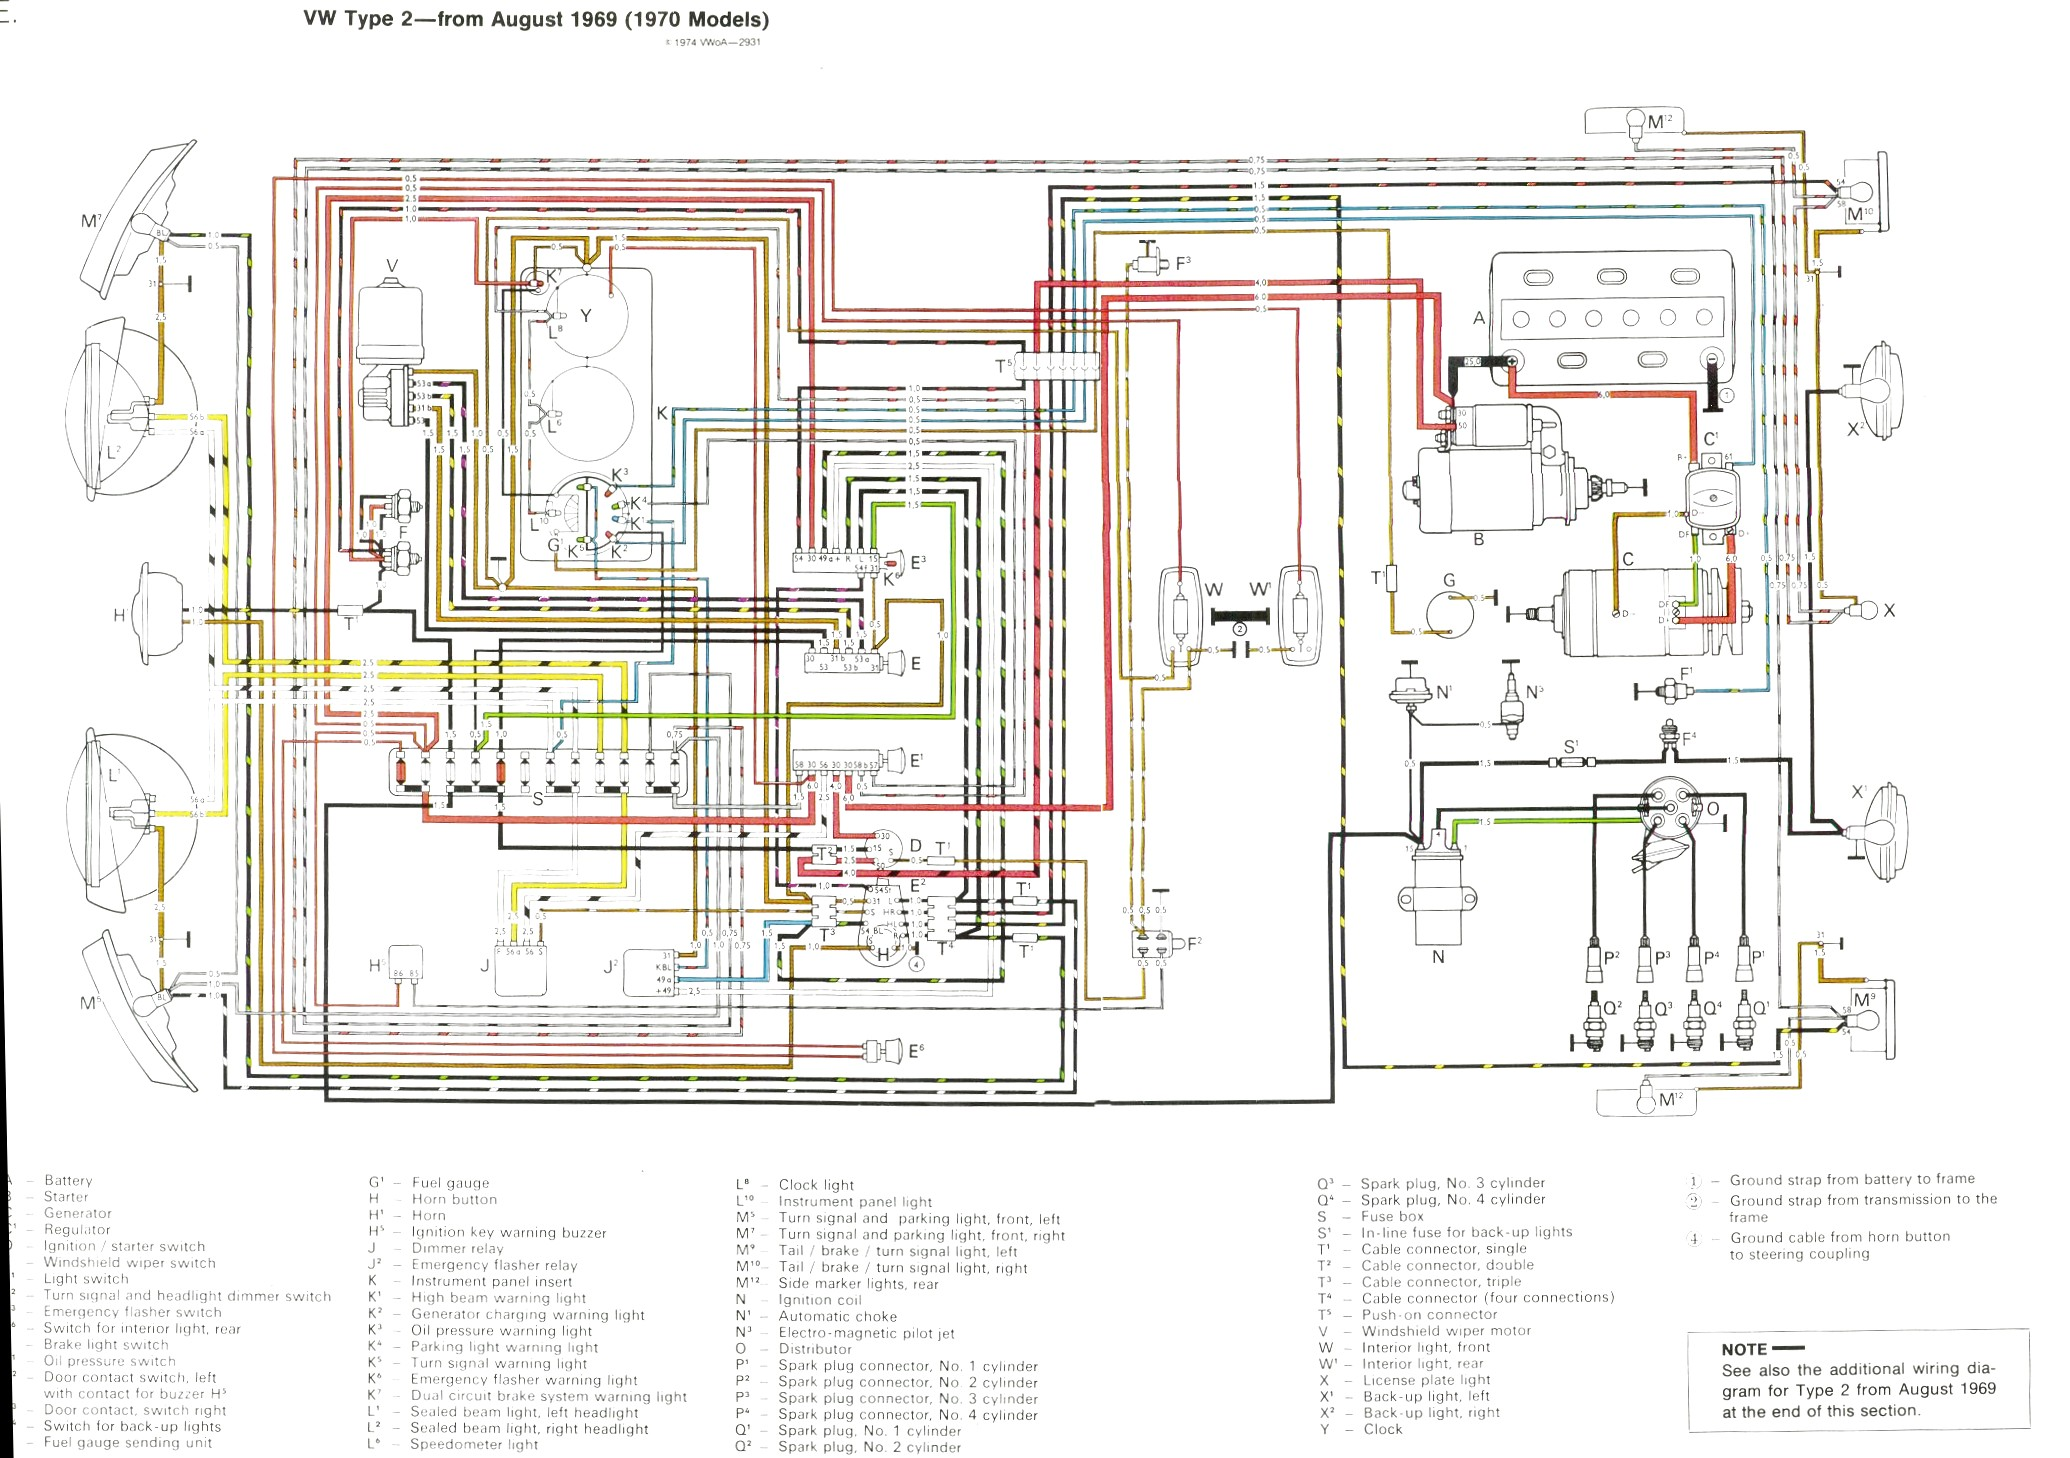 70 vw wiring diagram wiring diagram will be a thing \u2022  70 vw type 3 wiring diagram get free image about wiring 1966 vw beetle wiring diagram